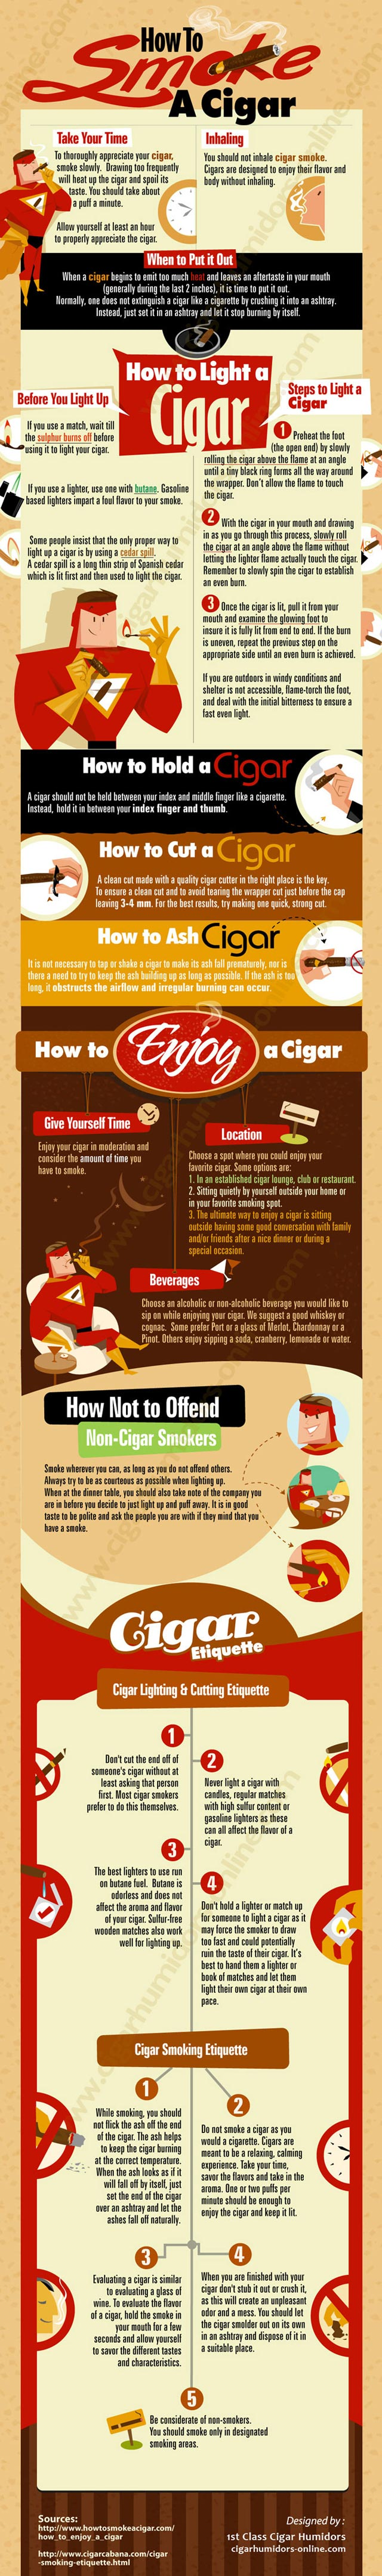 How-To-Smoke-A-Cigar-infographic